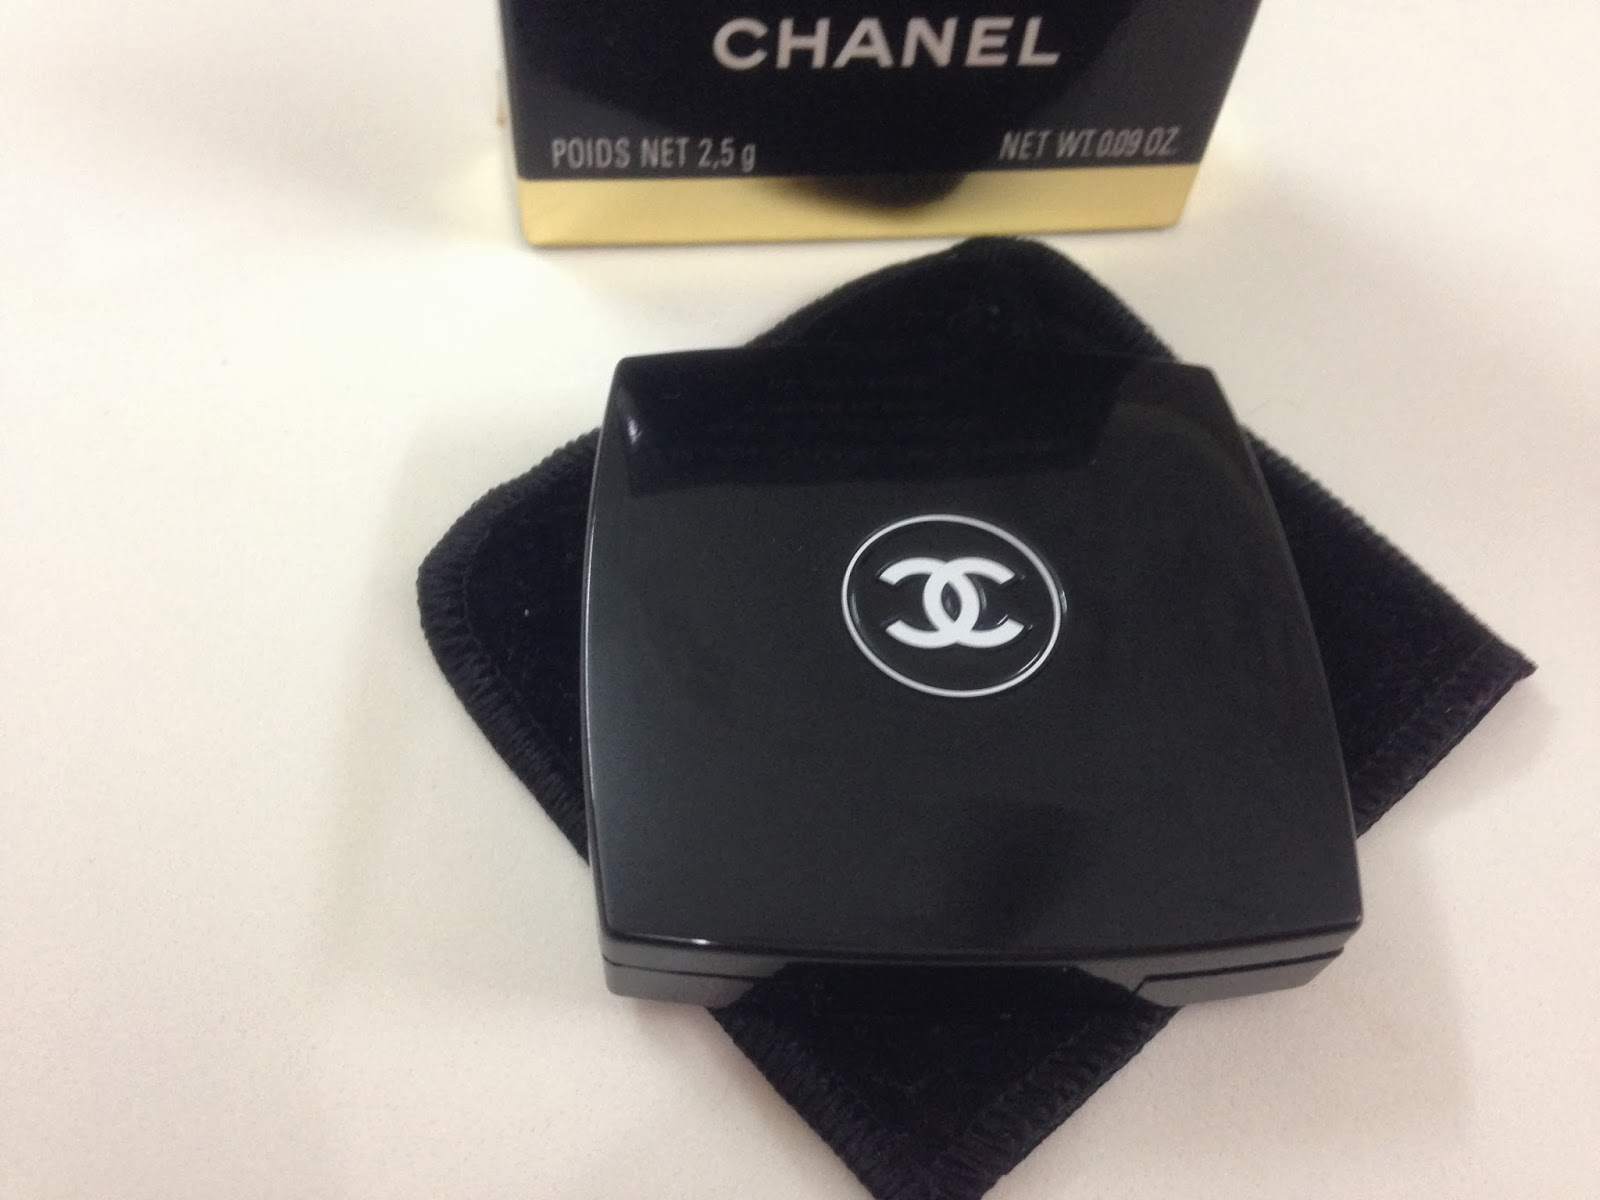 Chanel Le Blush Creme De Chanel (65) Affinite